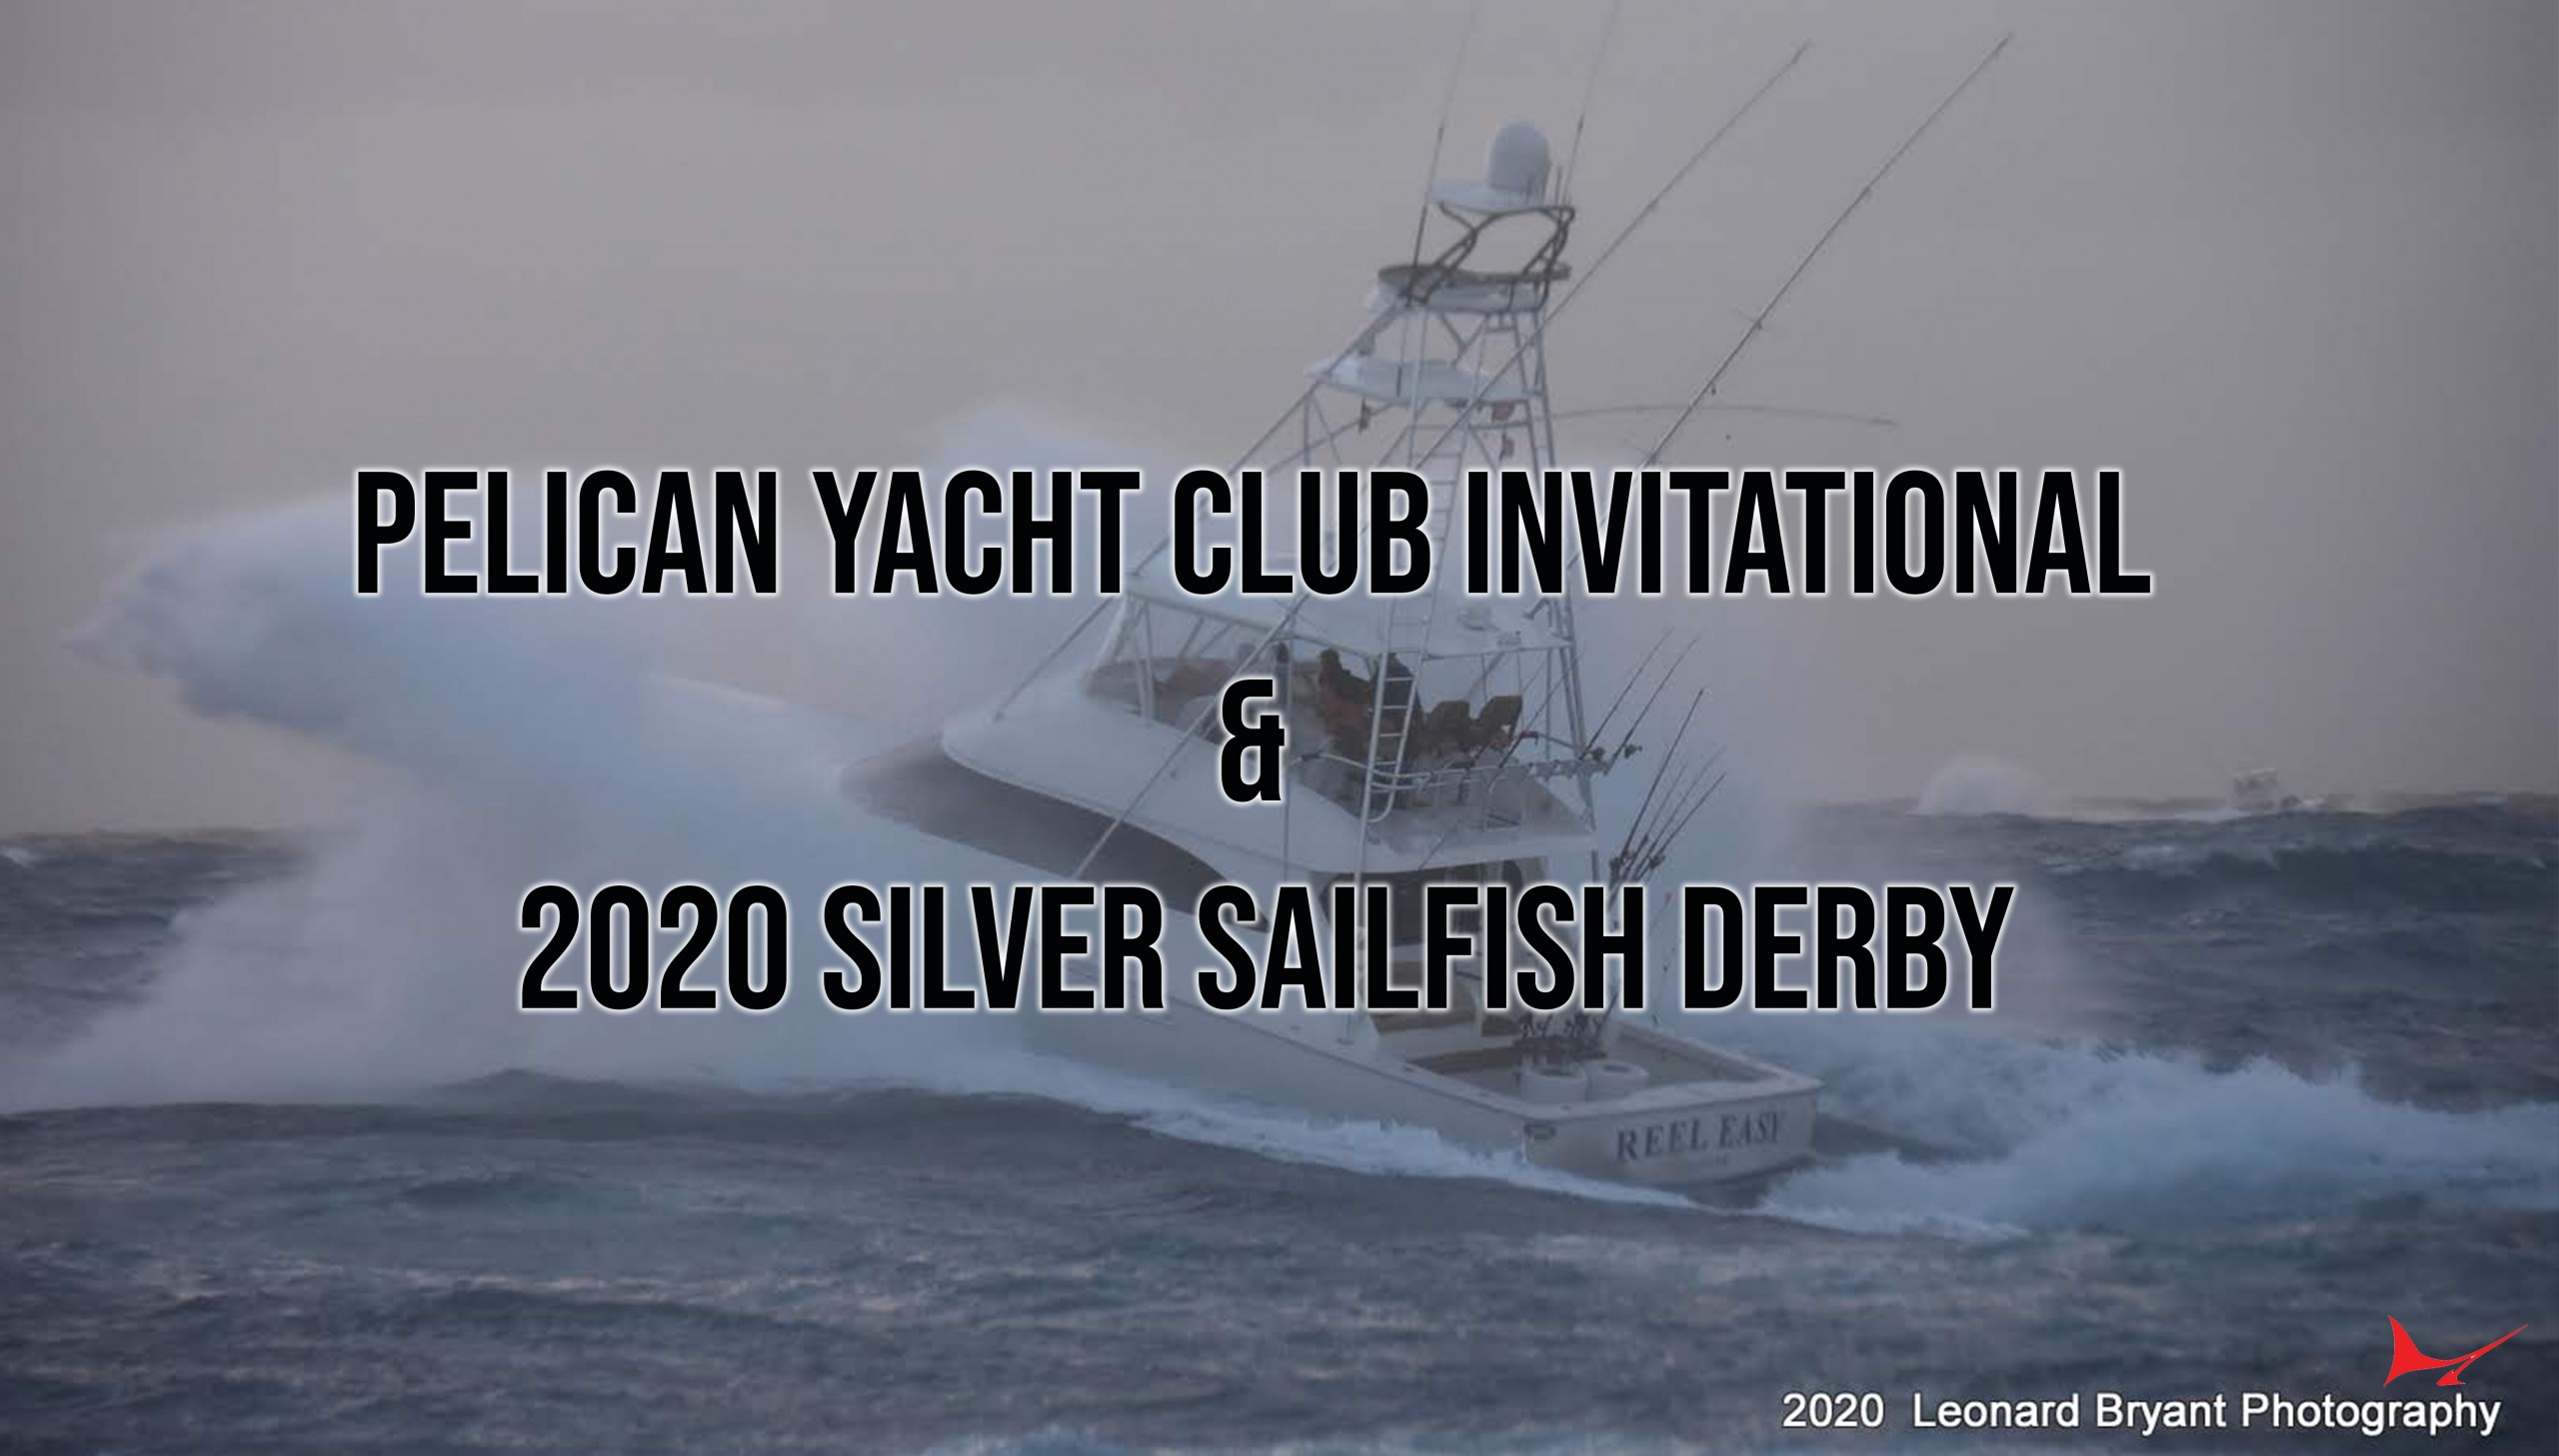 banner with 2020 Pelican Yacht Club and Siver Sailfish Derby written on it with a sportfish boat in the back ground